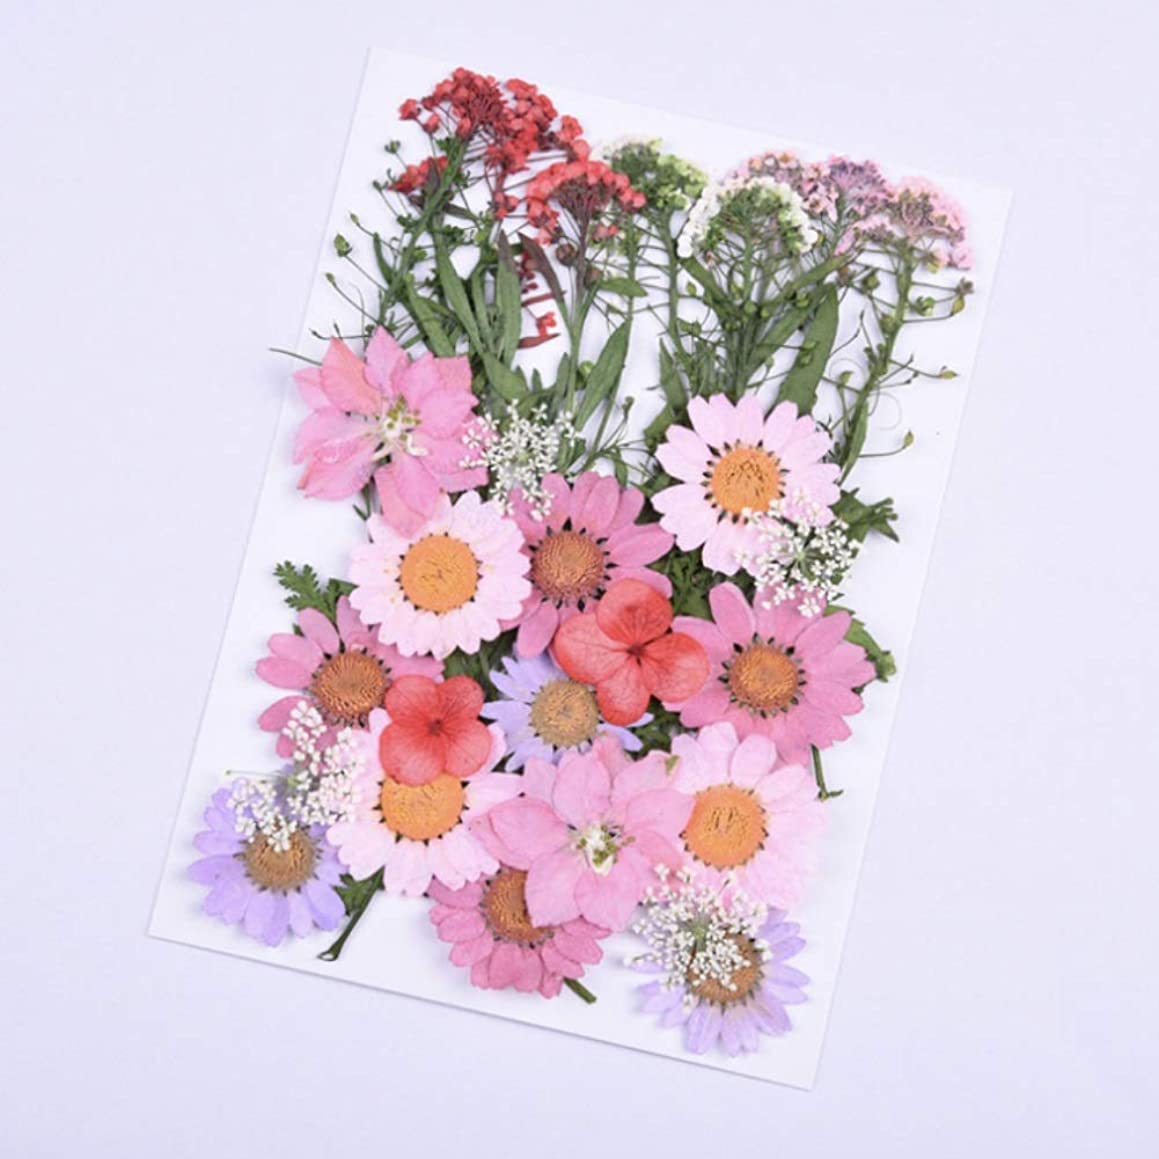 CheeseandU Real Mixed Multiple Dried Pressed Flowers, Mini Rose, Daisy, Larkspur, Queen Anne's Lace Hydrangea Alyssum Leaves Natural Pressed Flowers For Art Craft DIY Resin, 35PCS